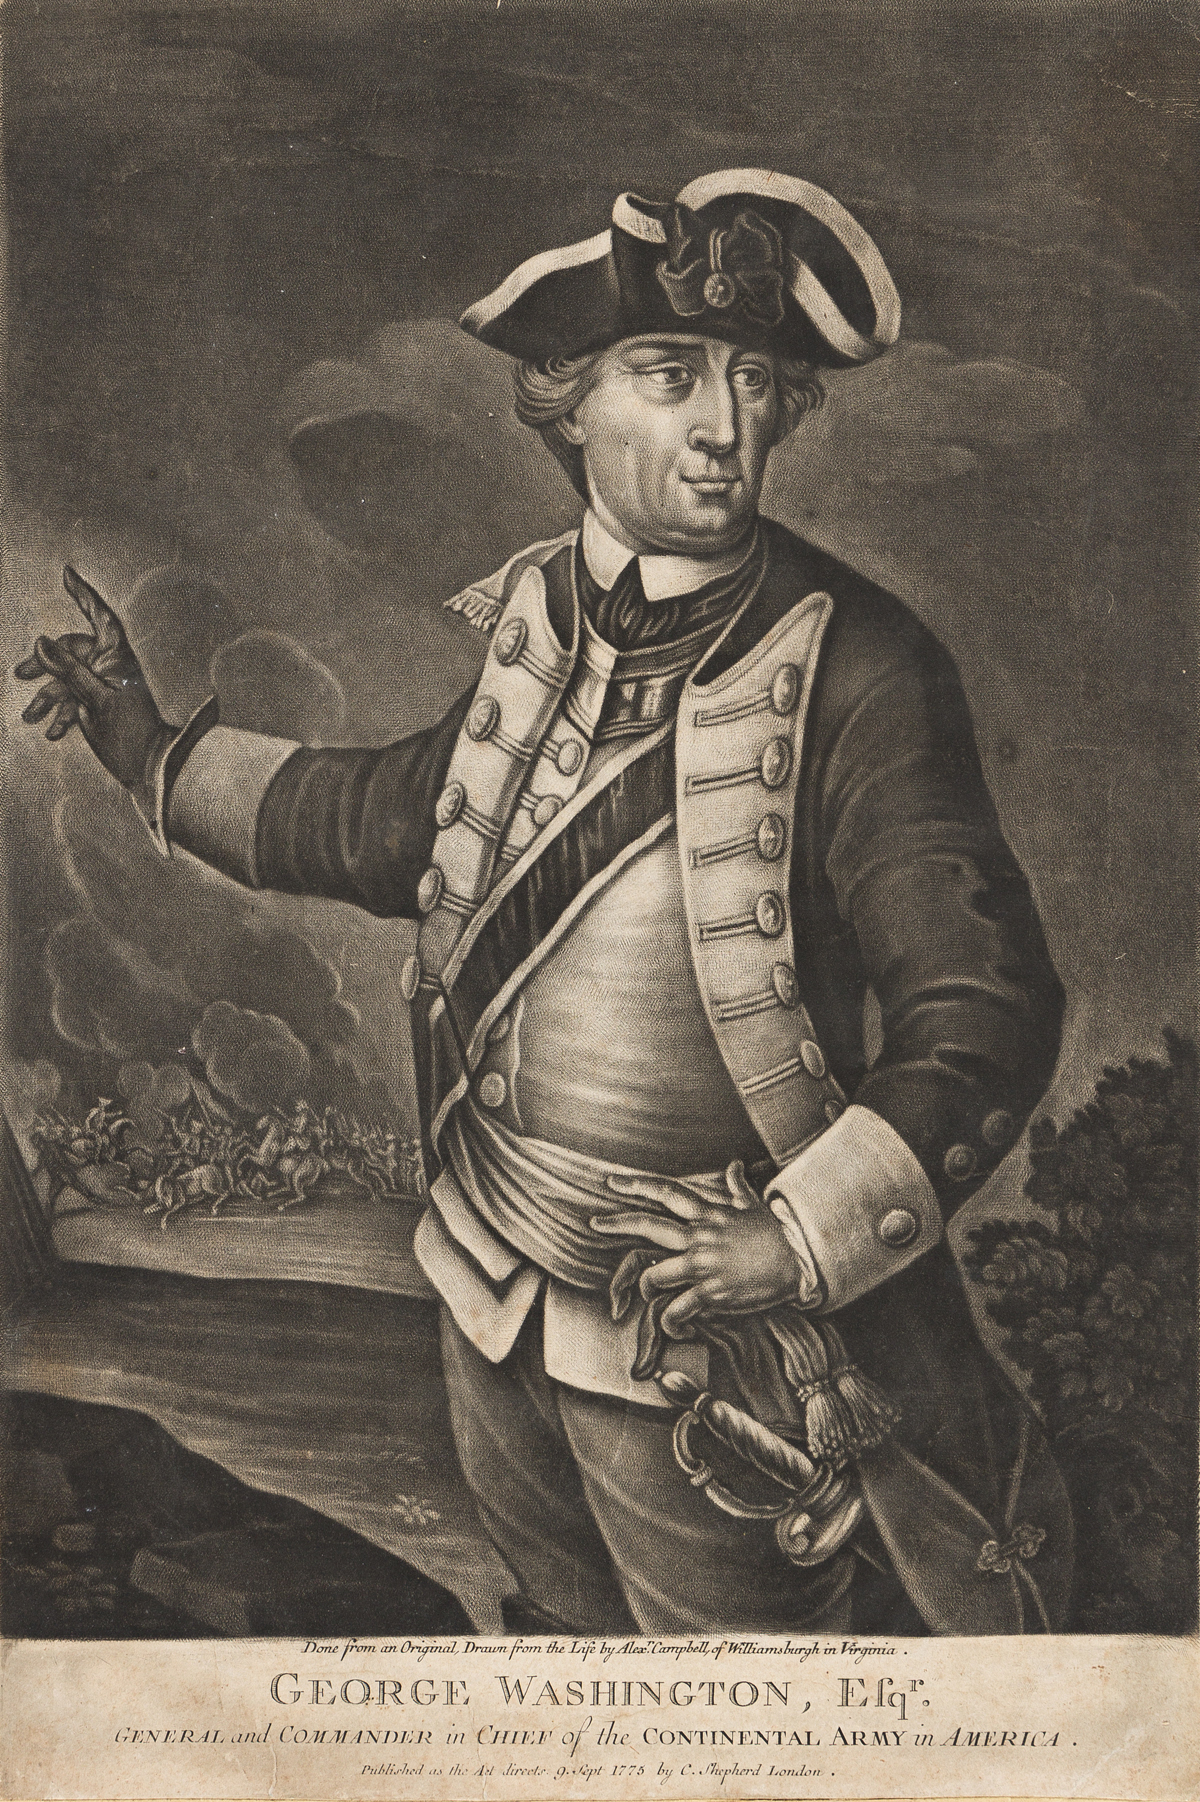 (WASHINGTON.) George Washington, Esqr., General and Commander in Chief of the Continental Army in America.